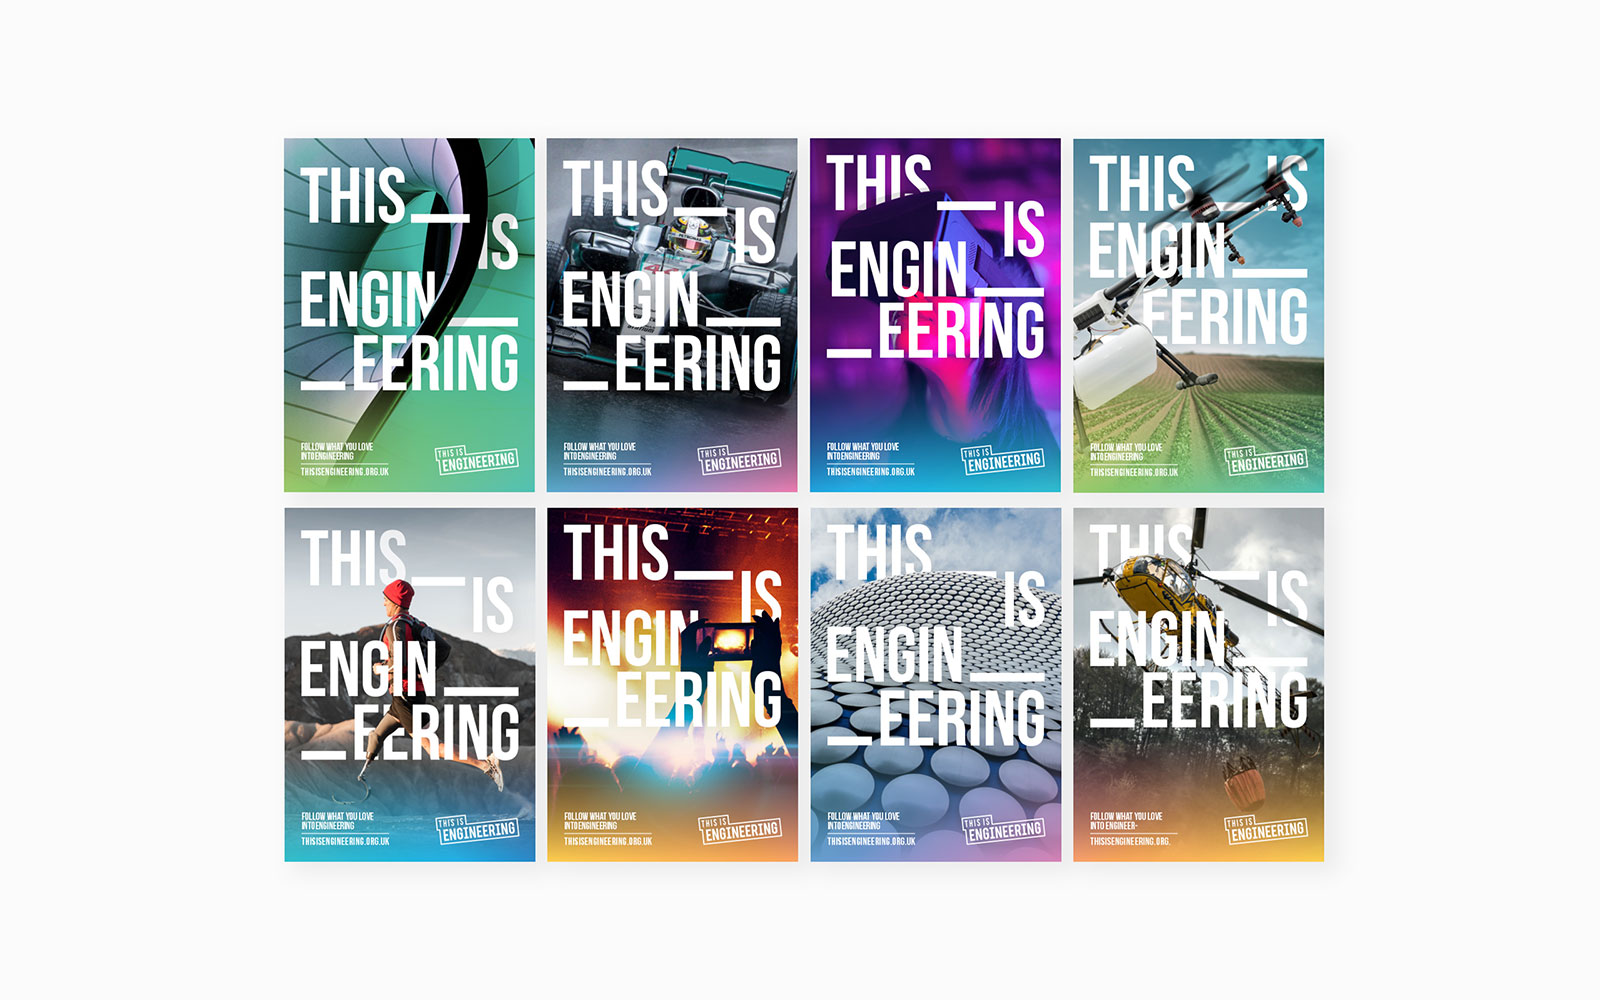 royal-academy-of-engineering-posters